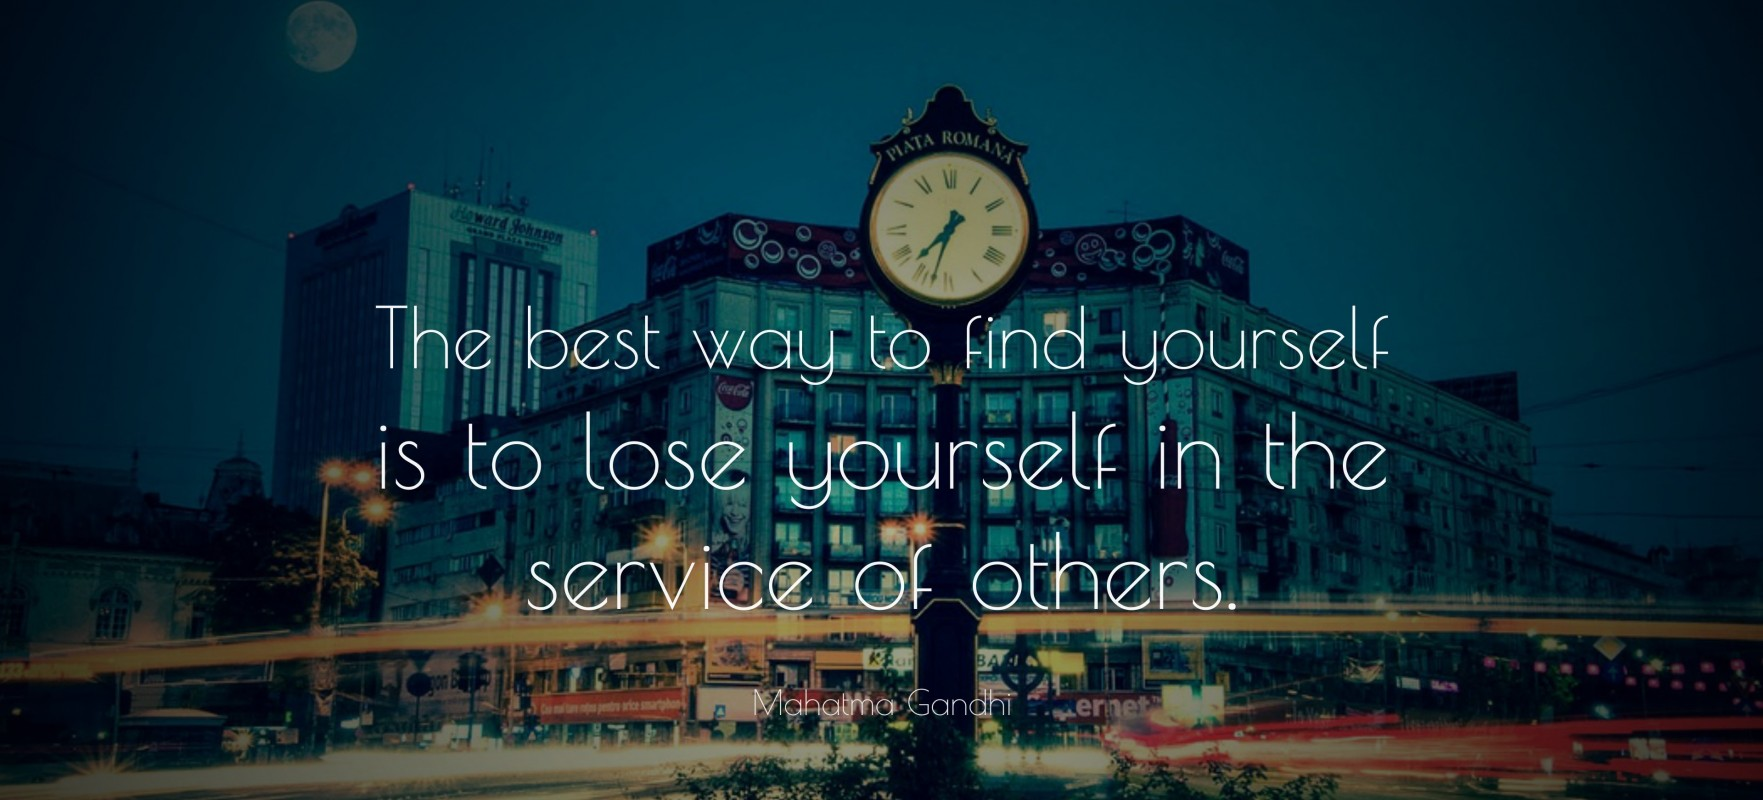 Find yourself through service quote